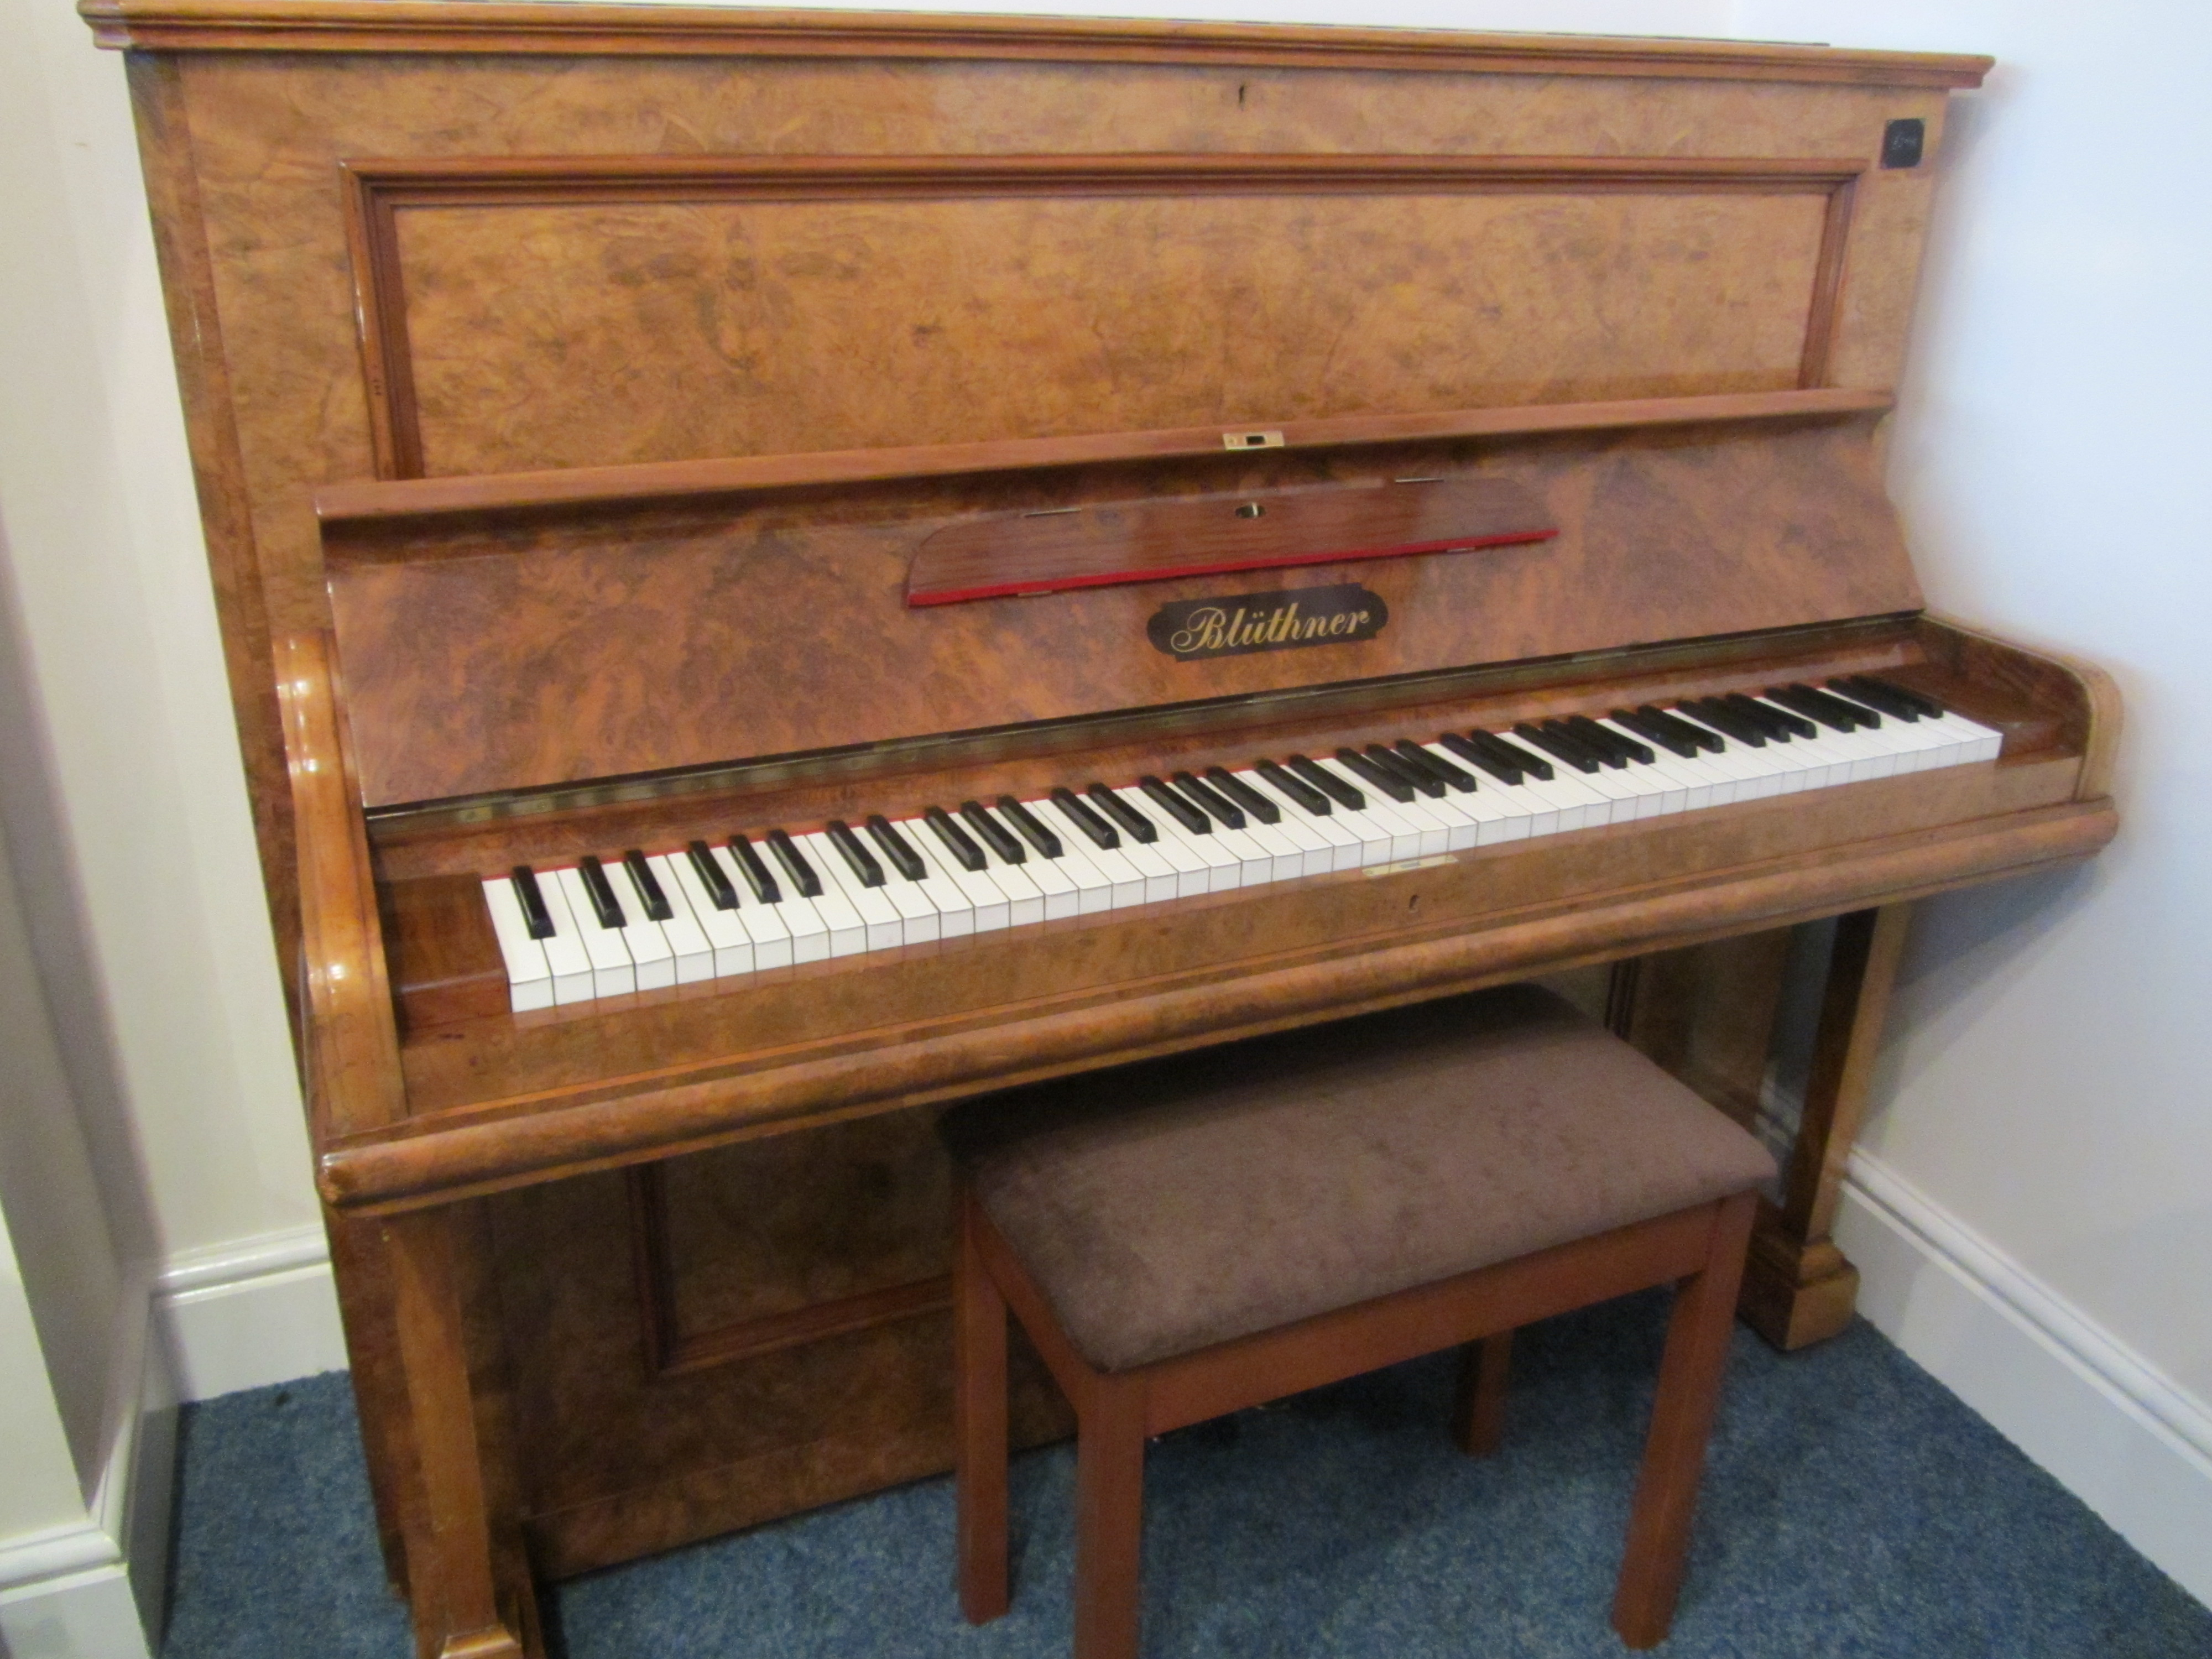 walnut pianos for sale looking for a cheap or free piano 0845 226 8204. Black Bedroom Furniture Sets. Home Design Ideas